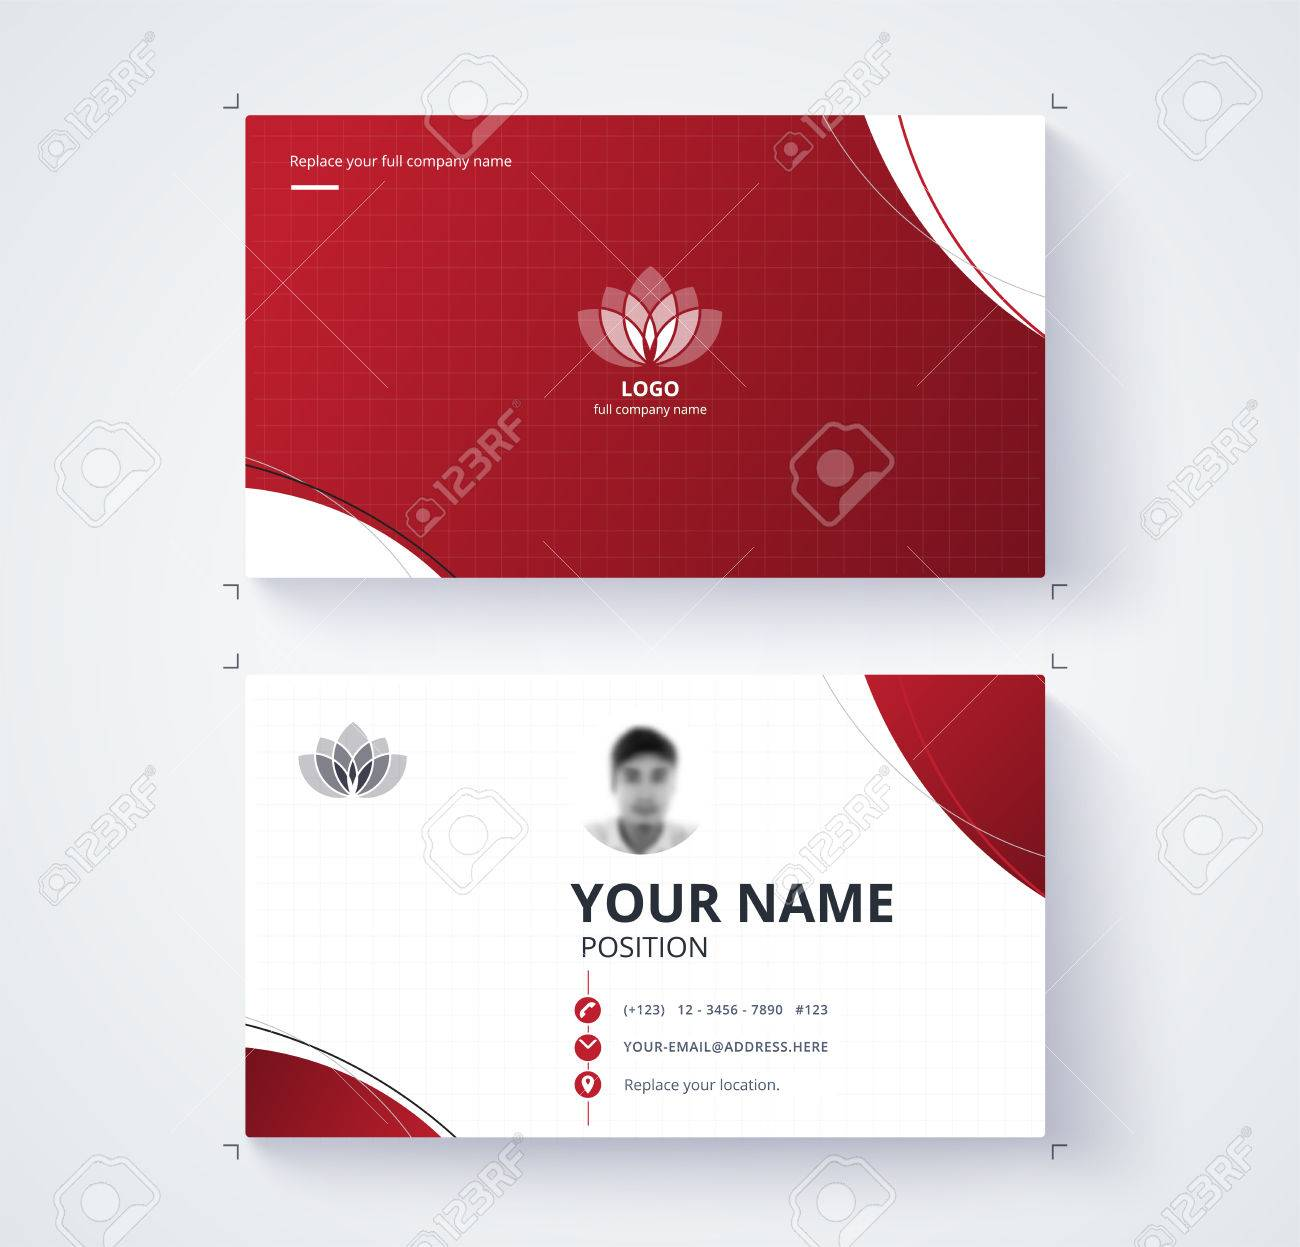 Red Business Card Template With Sample Logo Design. Vector Card ...